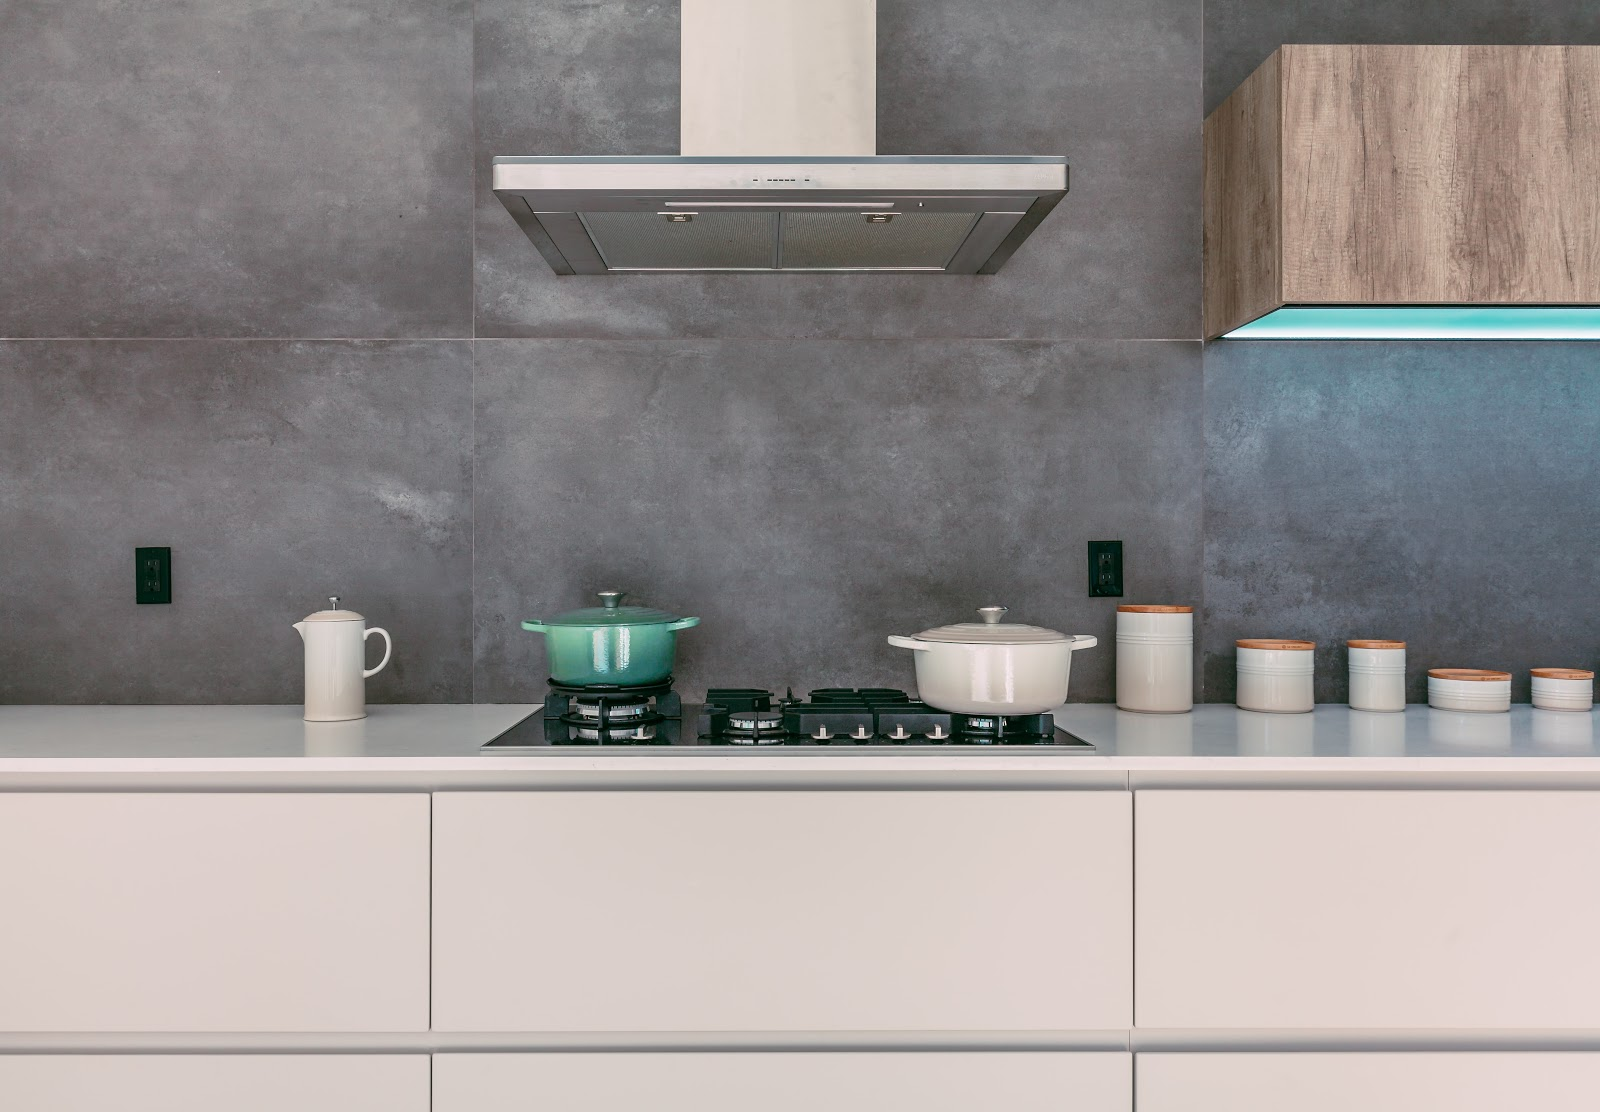 COVID-19 Impact On Virtual Kitchens In Dubai